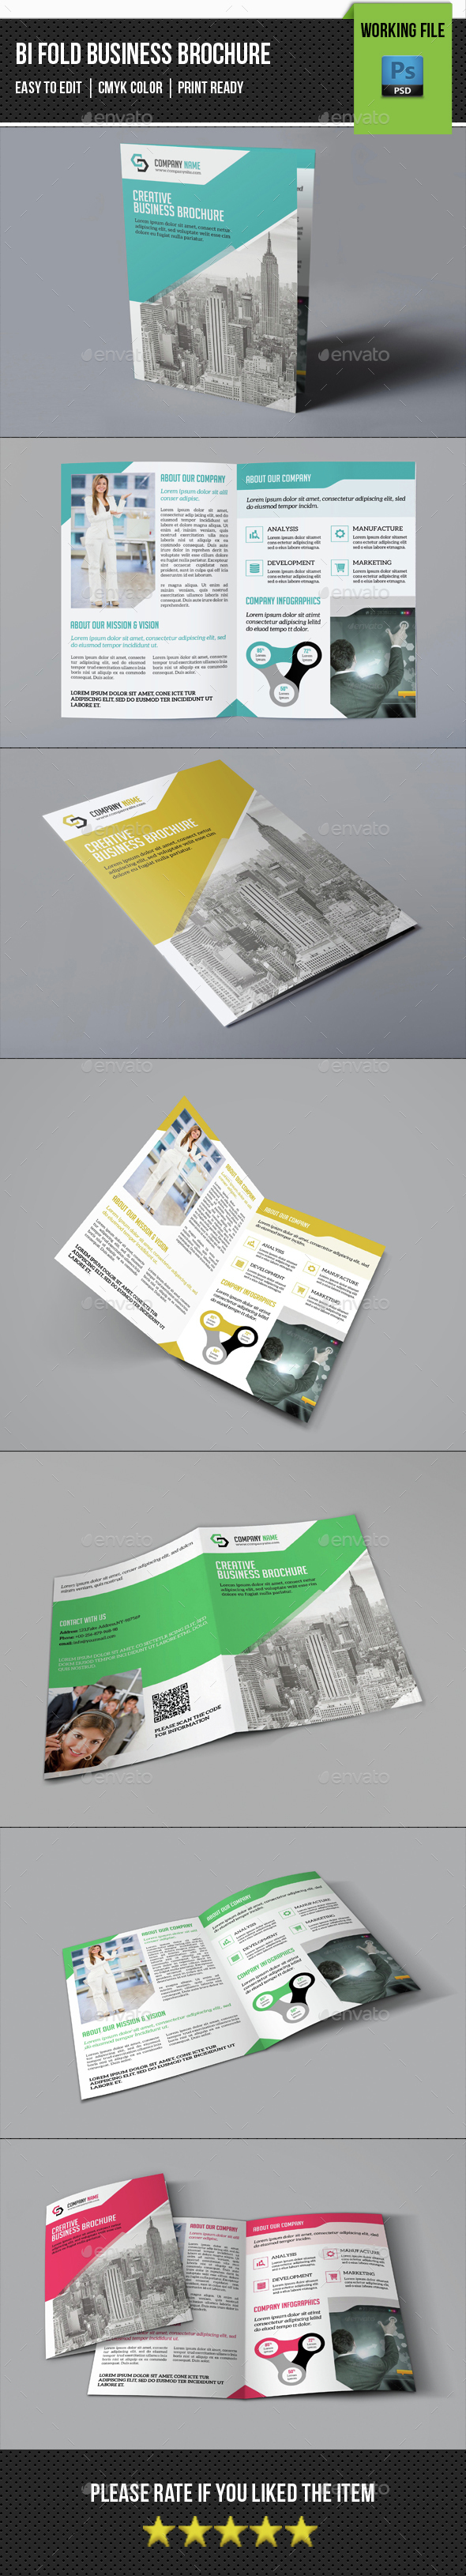 Business Brochure Template-V374 - Corporate Brochures